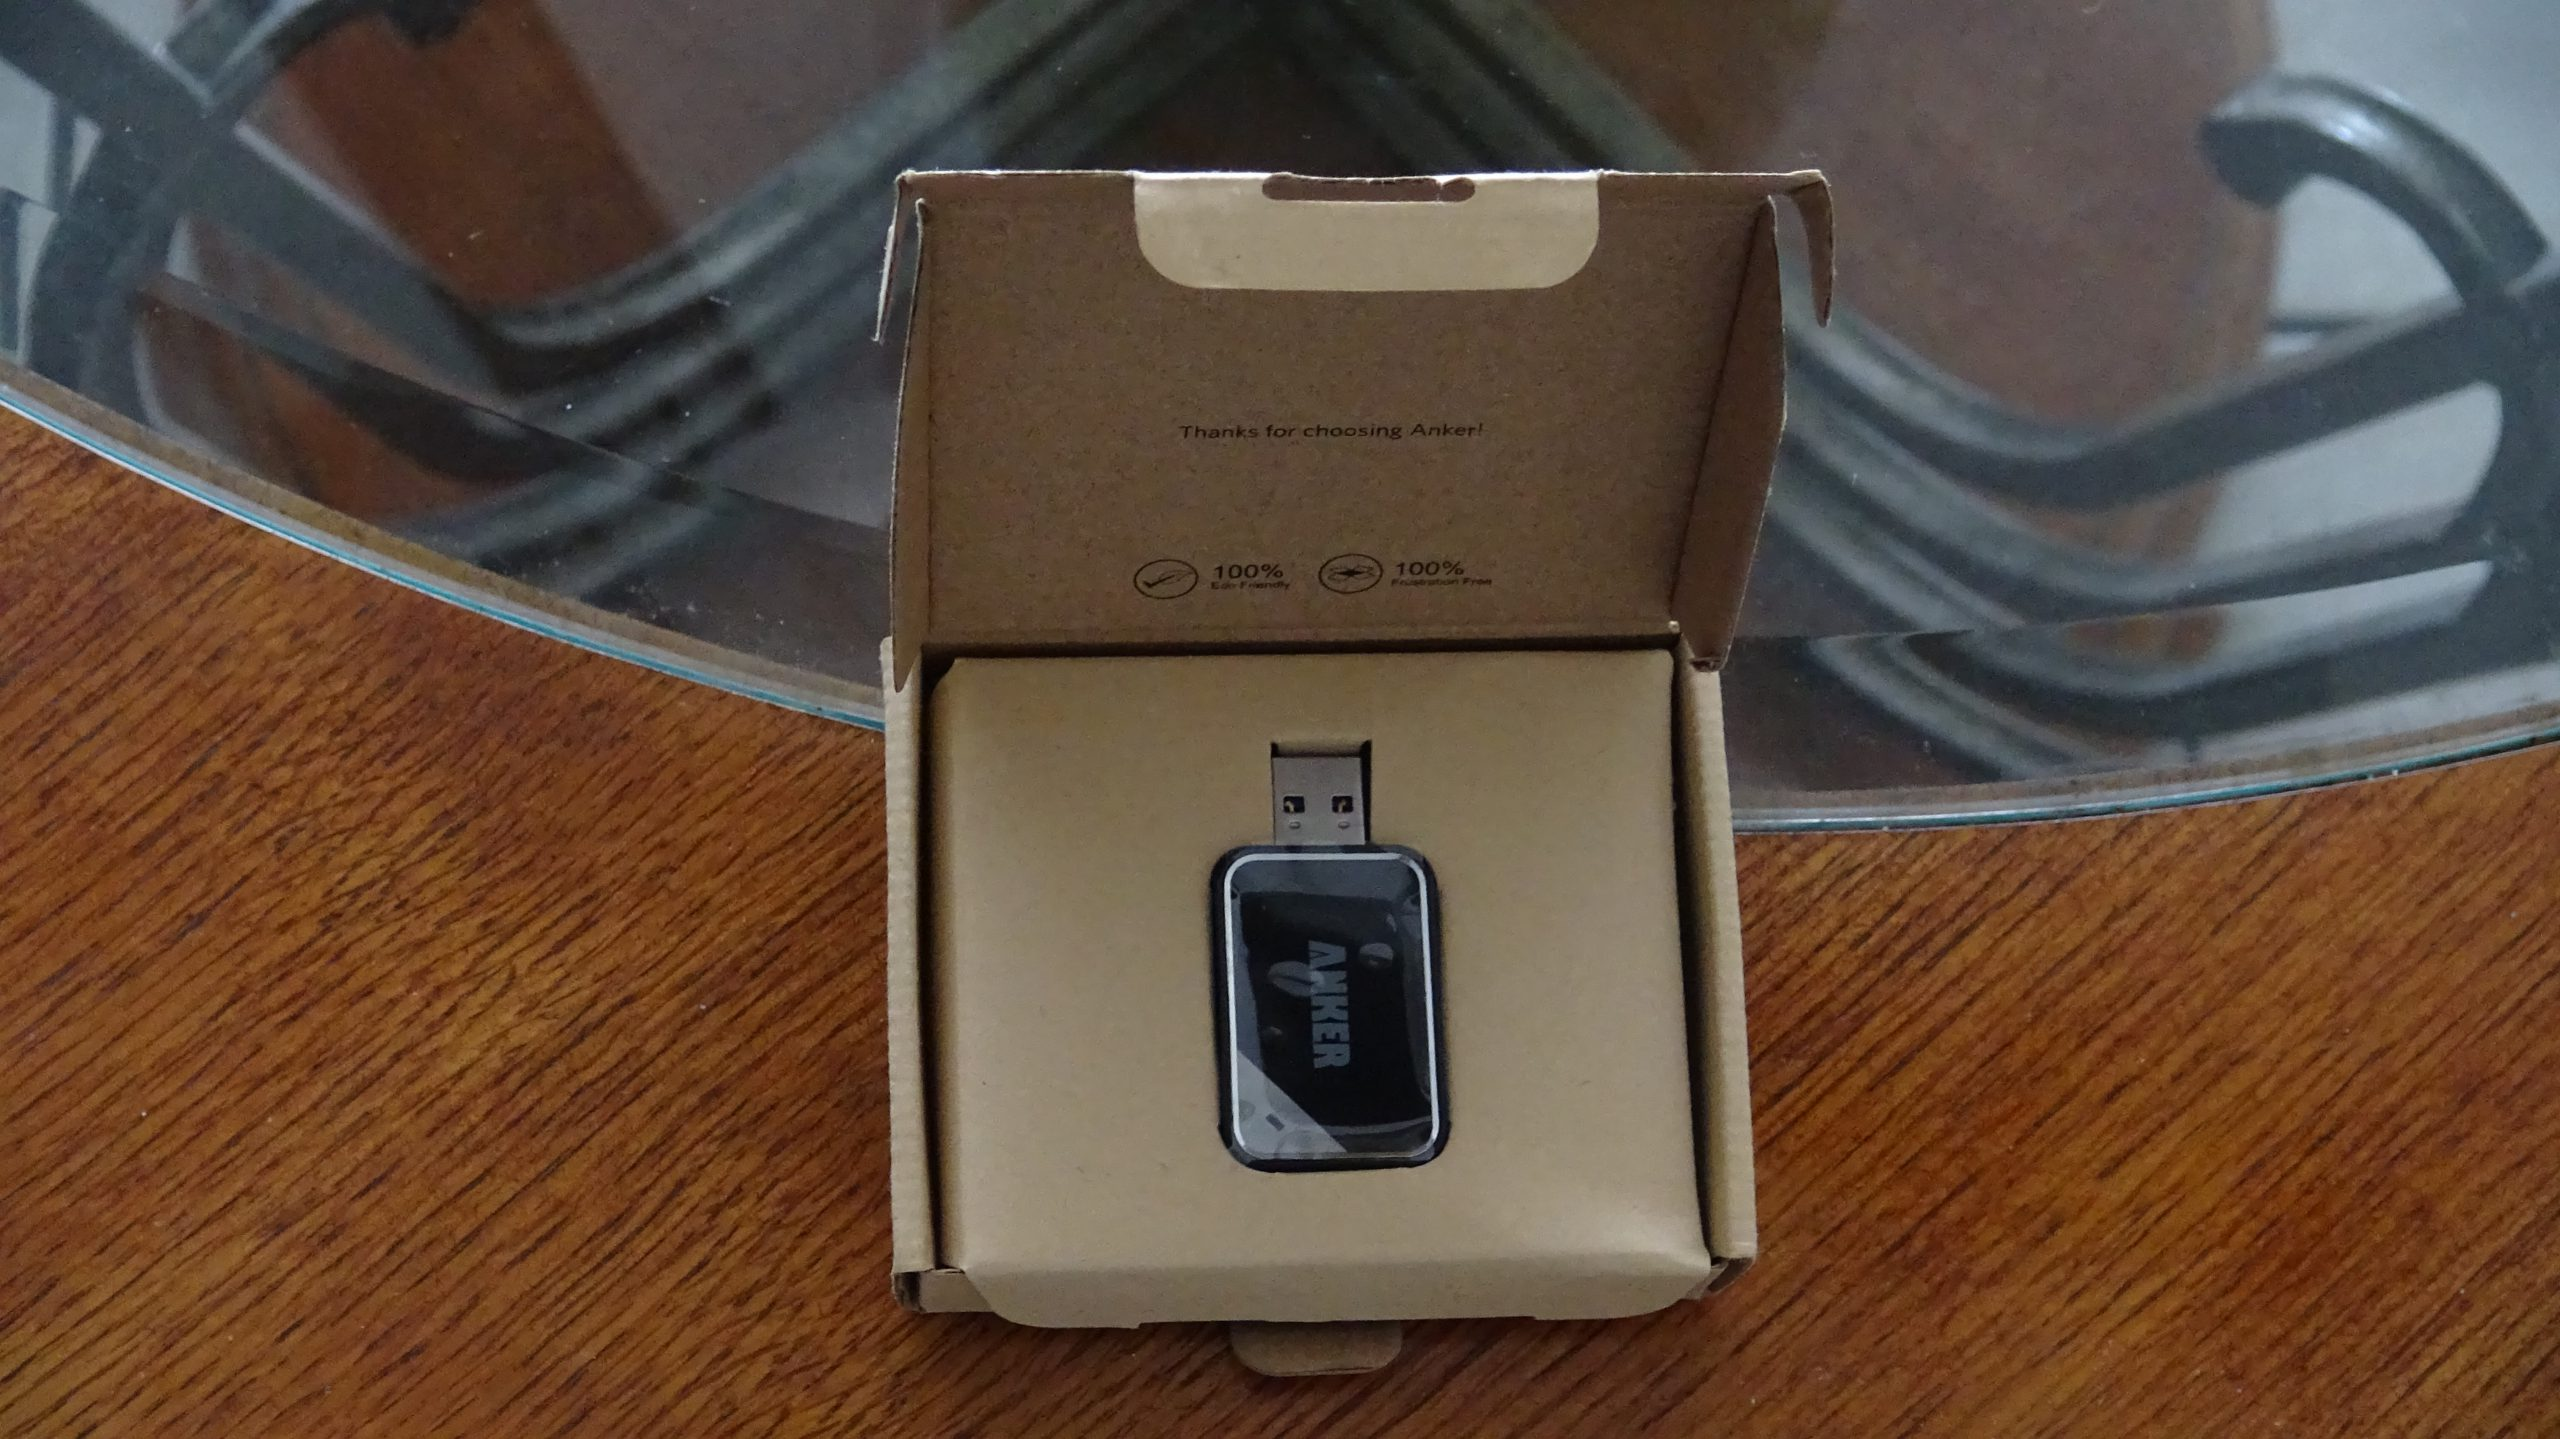 Anker USB 3.0 USB SD and Micro SD Reader - 4